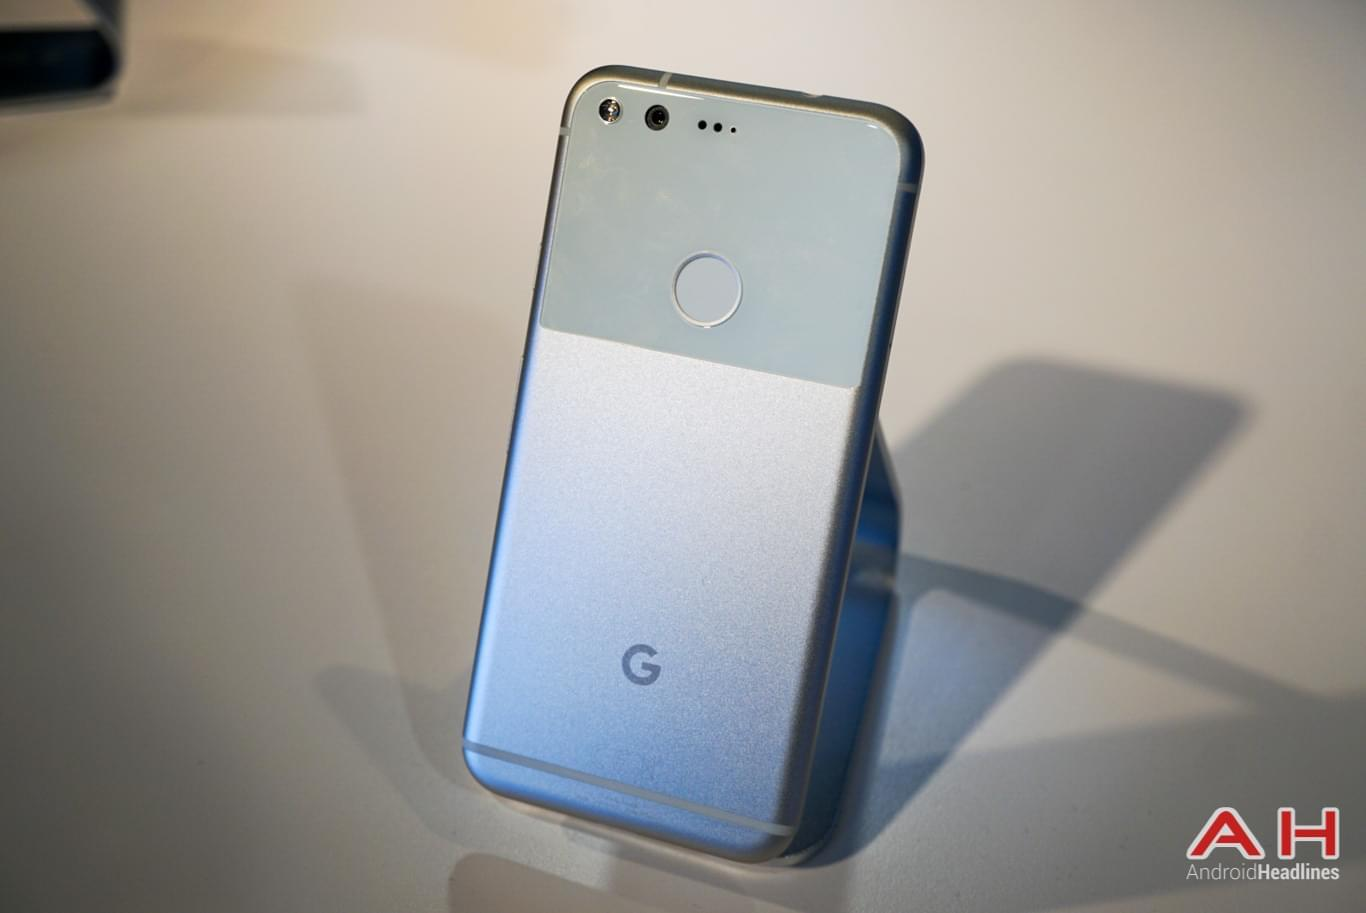 google-pixel-hands-on-ah-33